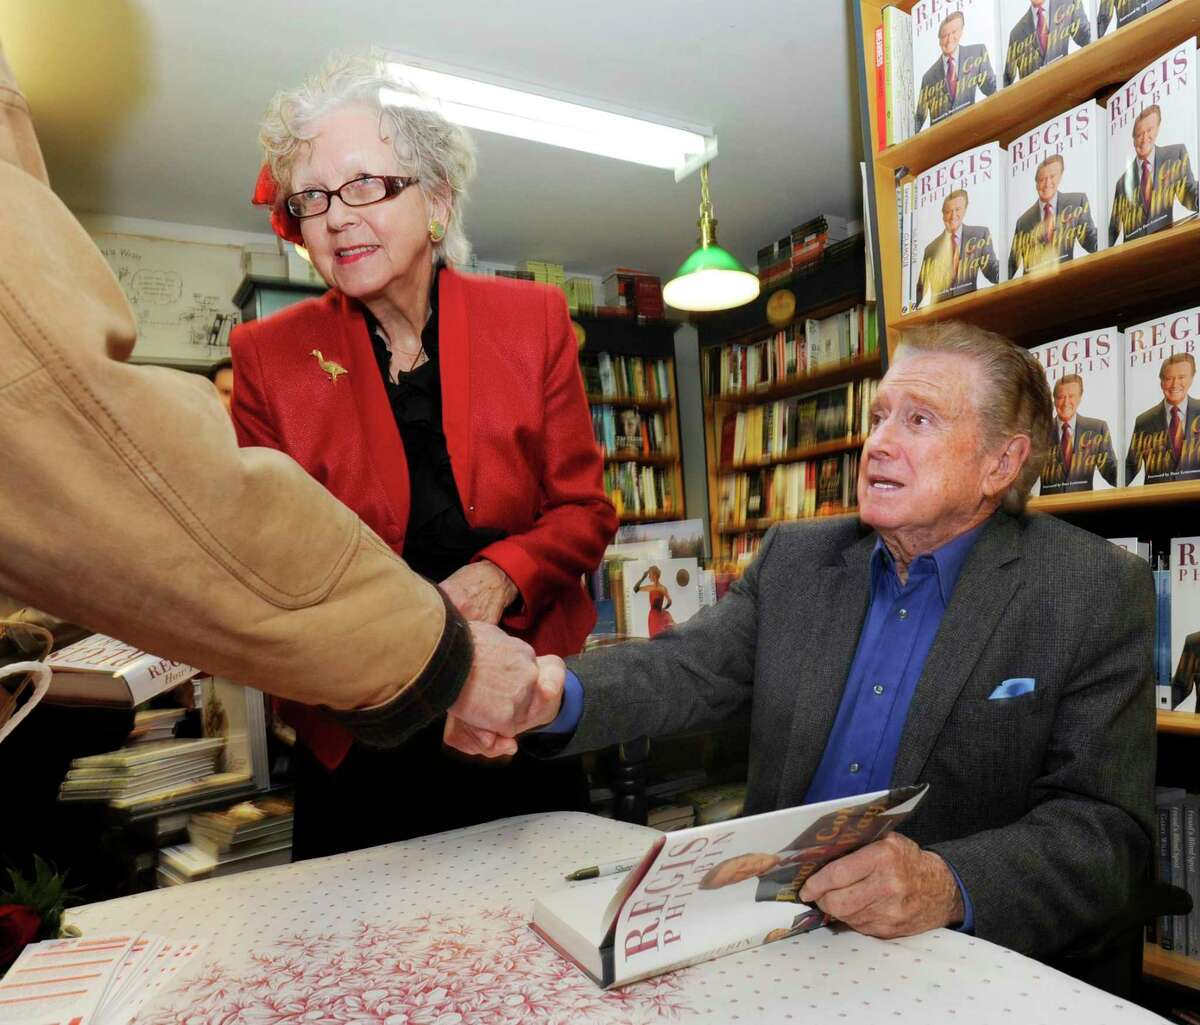 Greenwich resident Regis Philbin, seated, shakes the hand of a fan after signing a copy of his new memoir